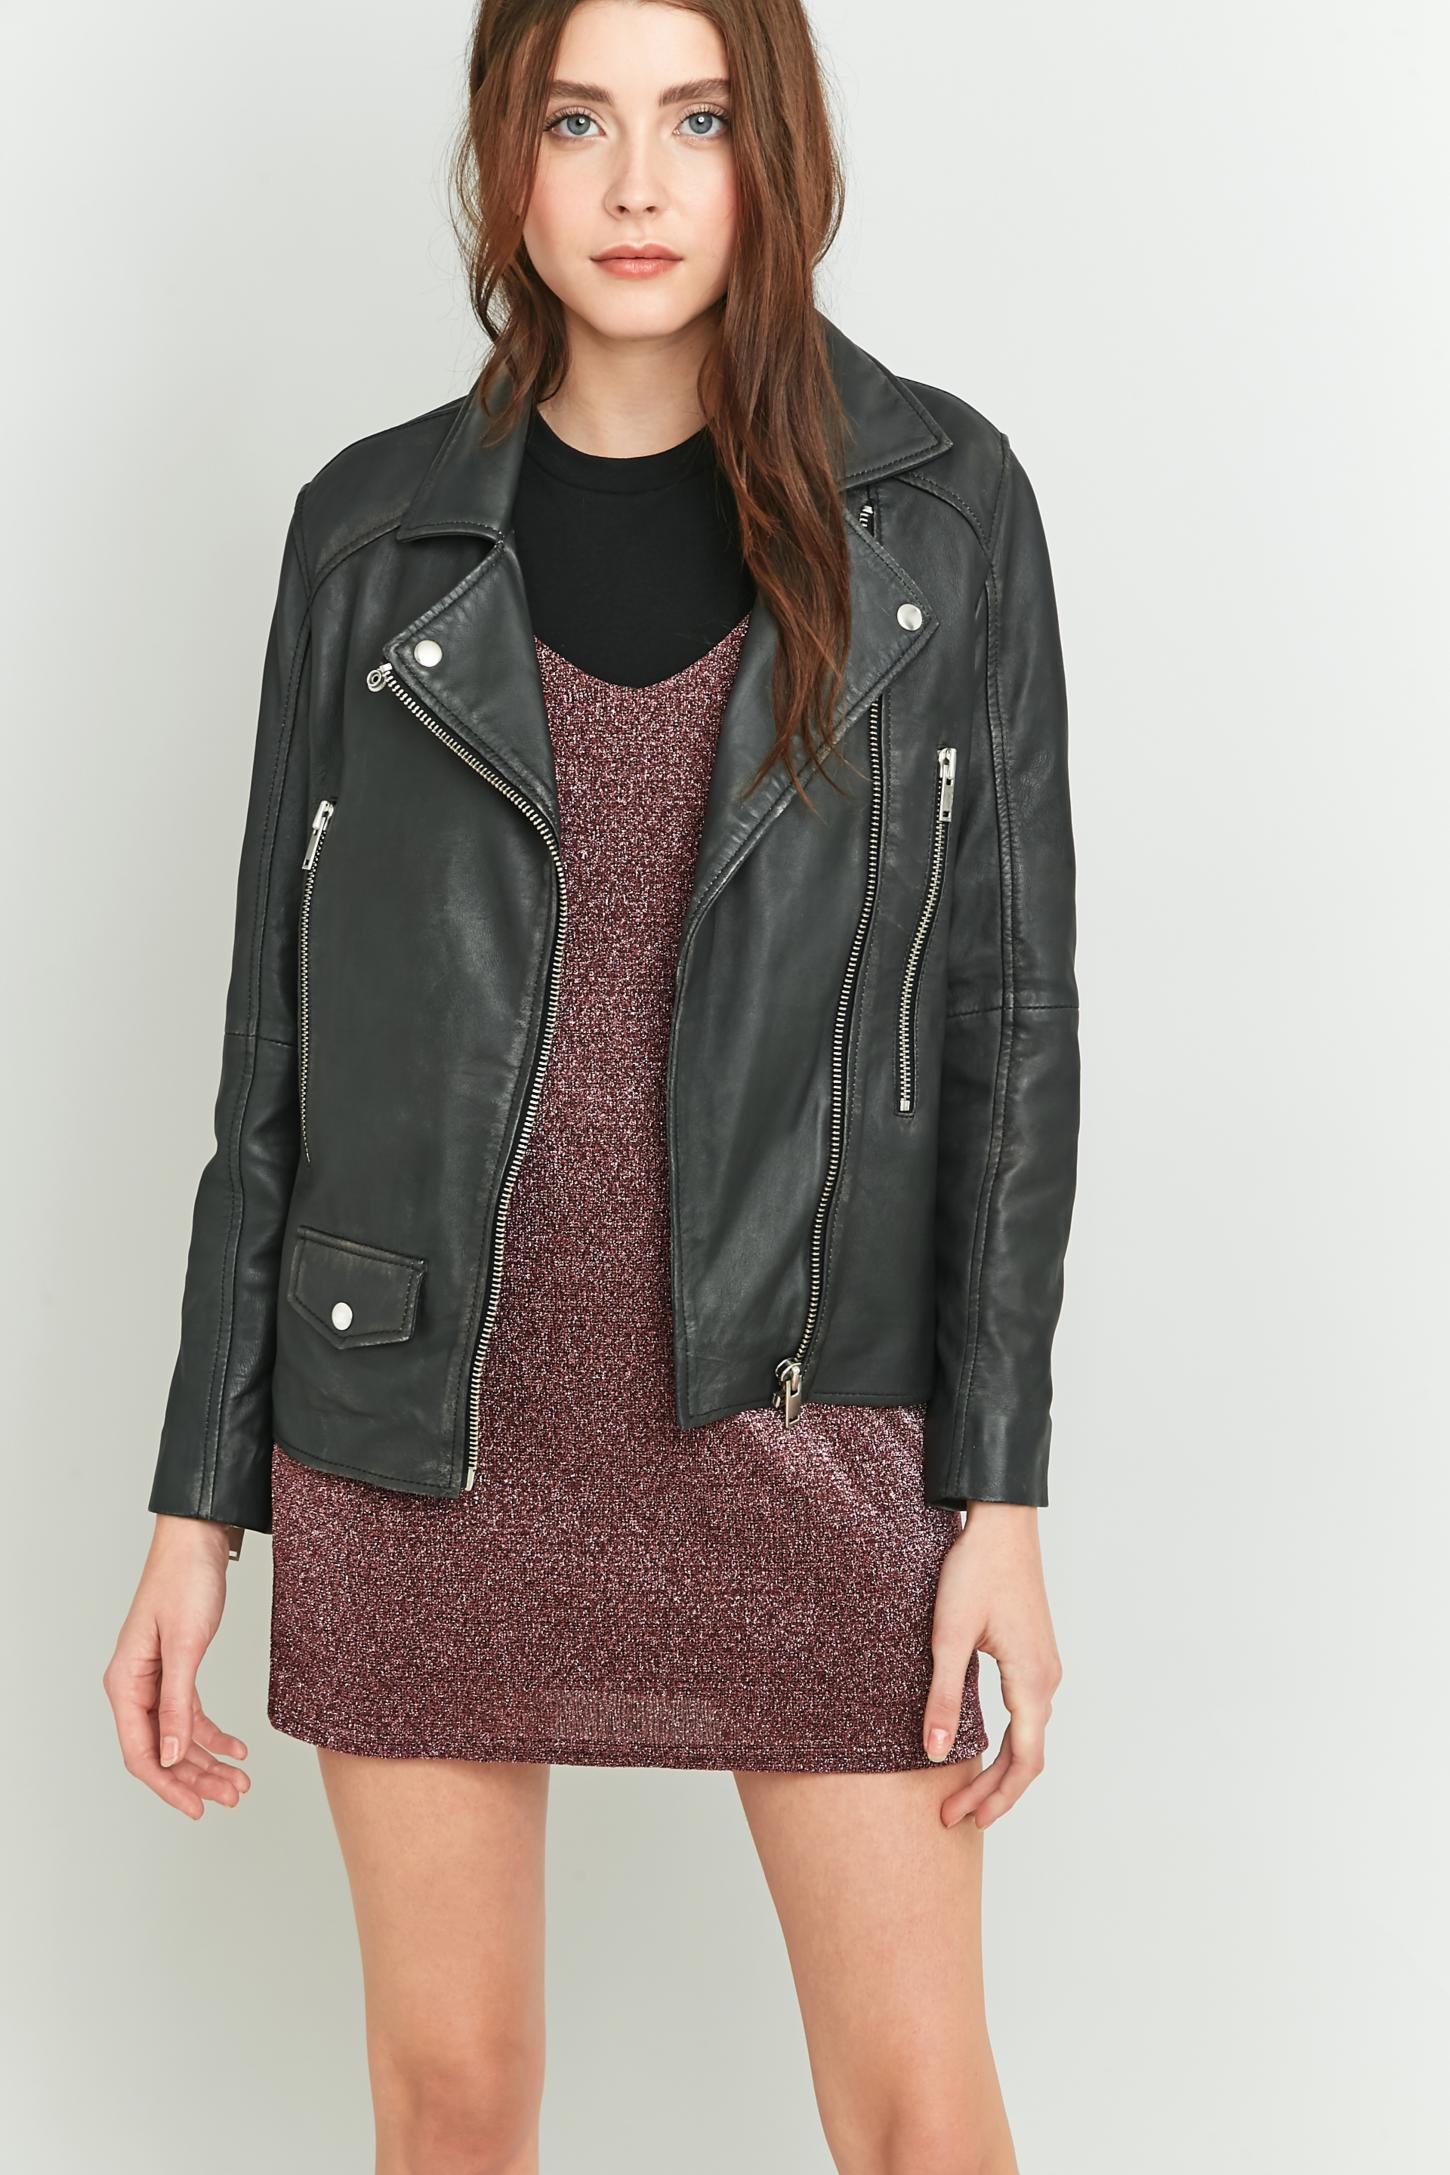 Leather jacket urban outfitters - Leather Jacket Urban Outfitters 38